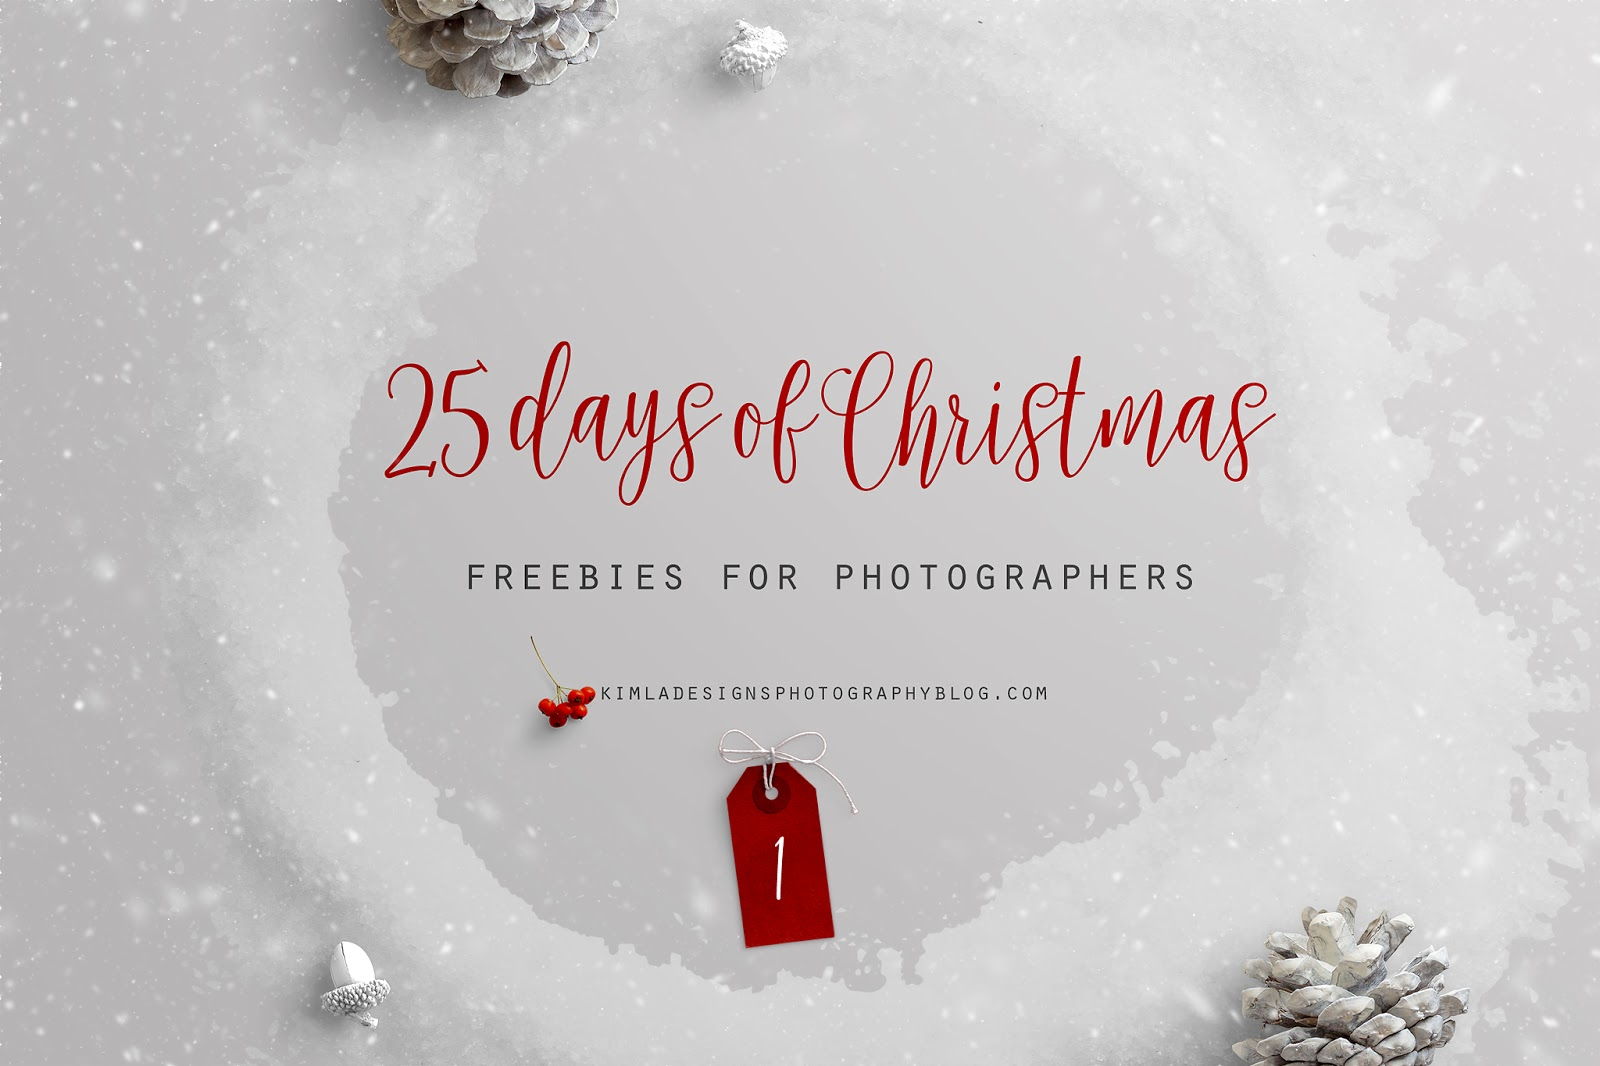 Day 1 of 25 Days of Christmas Freebies for Photographers